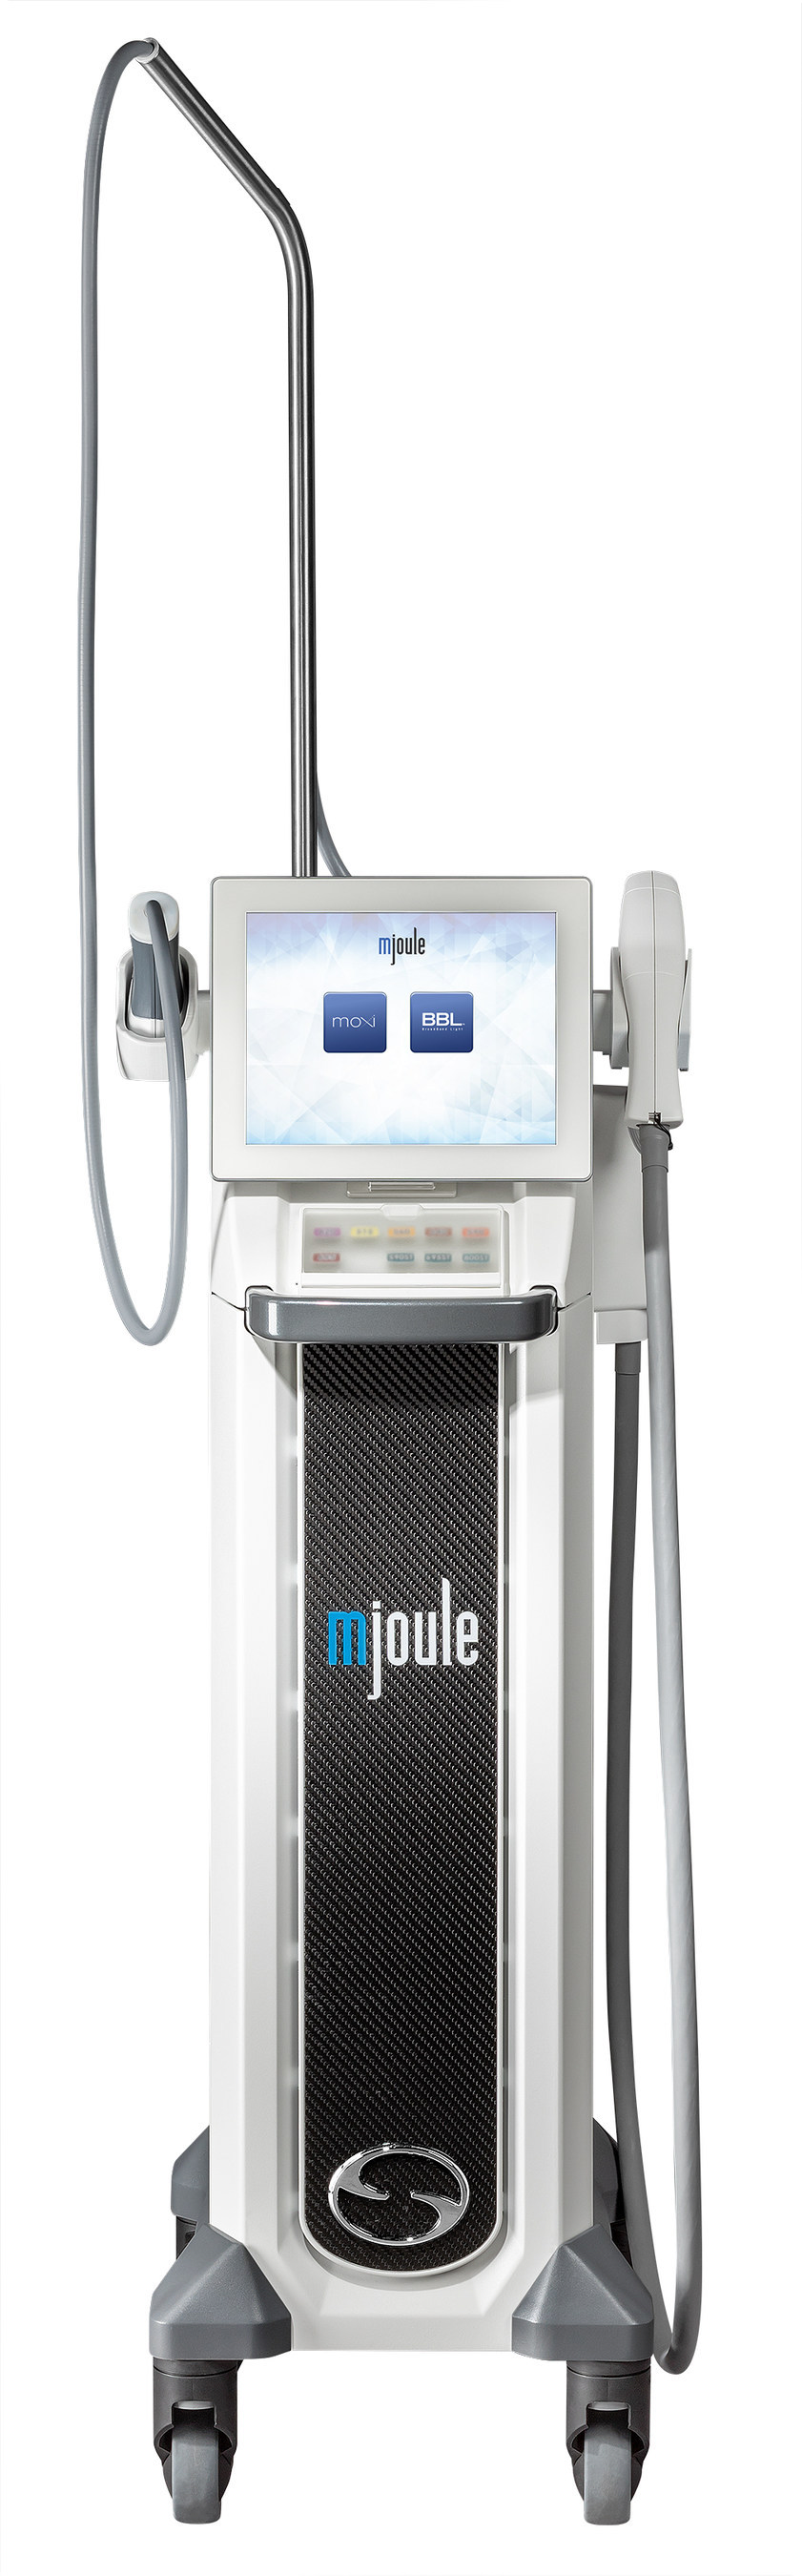 Sciton Unveils mJOULE Platform Featuring BBL HERO And MOXI image